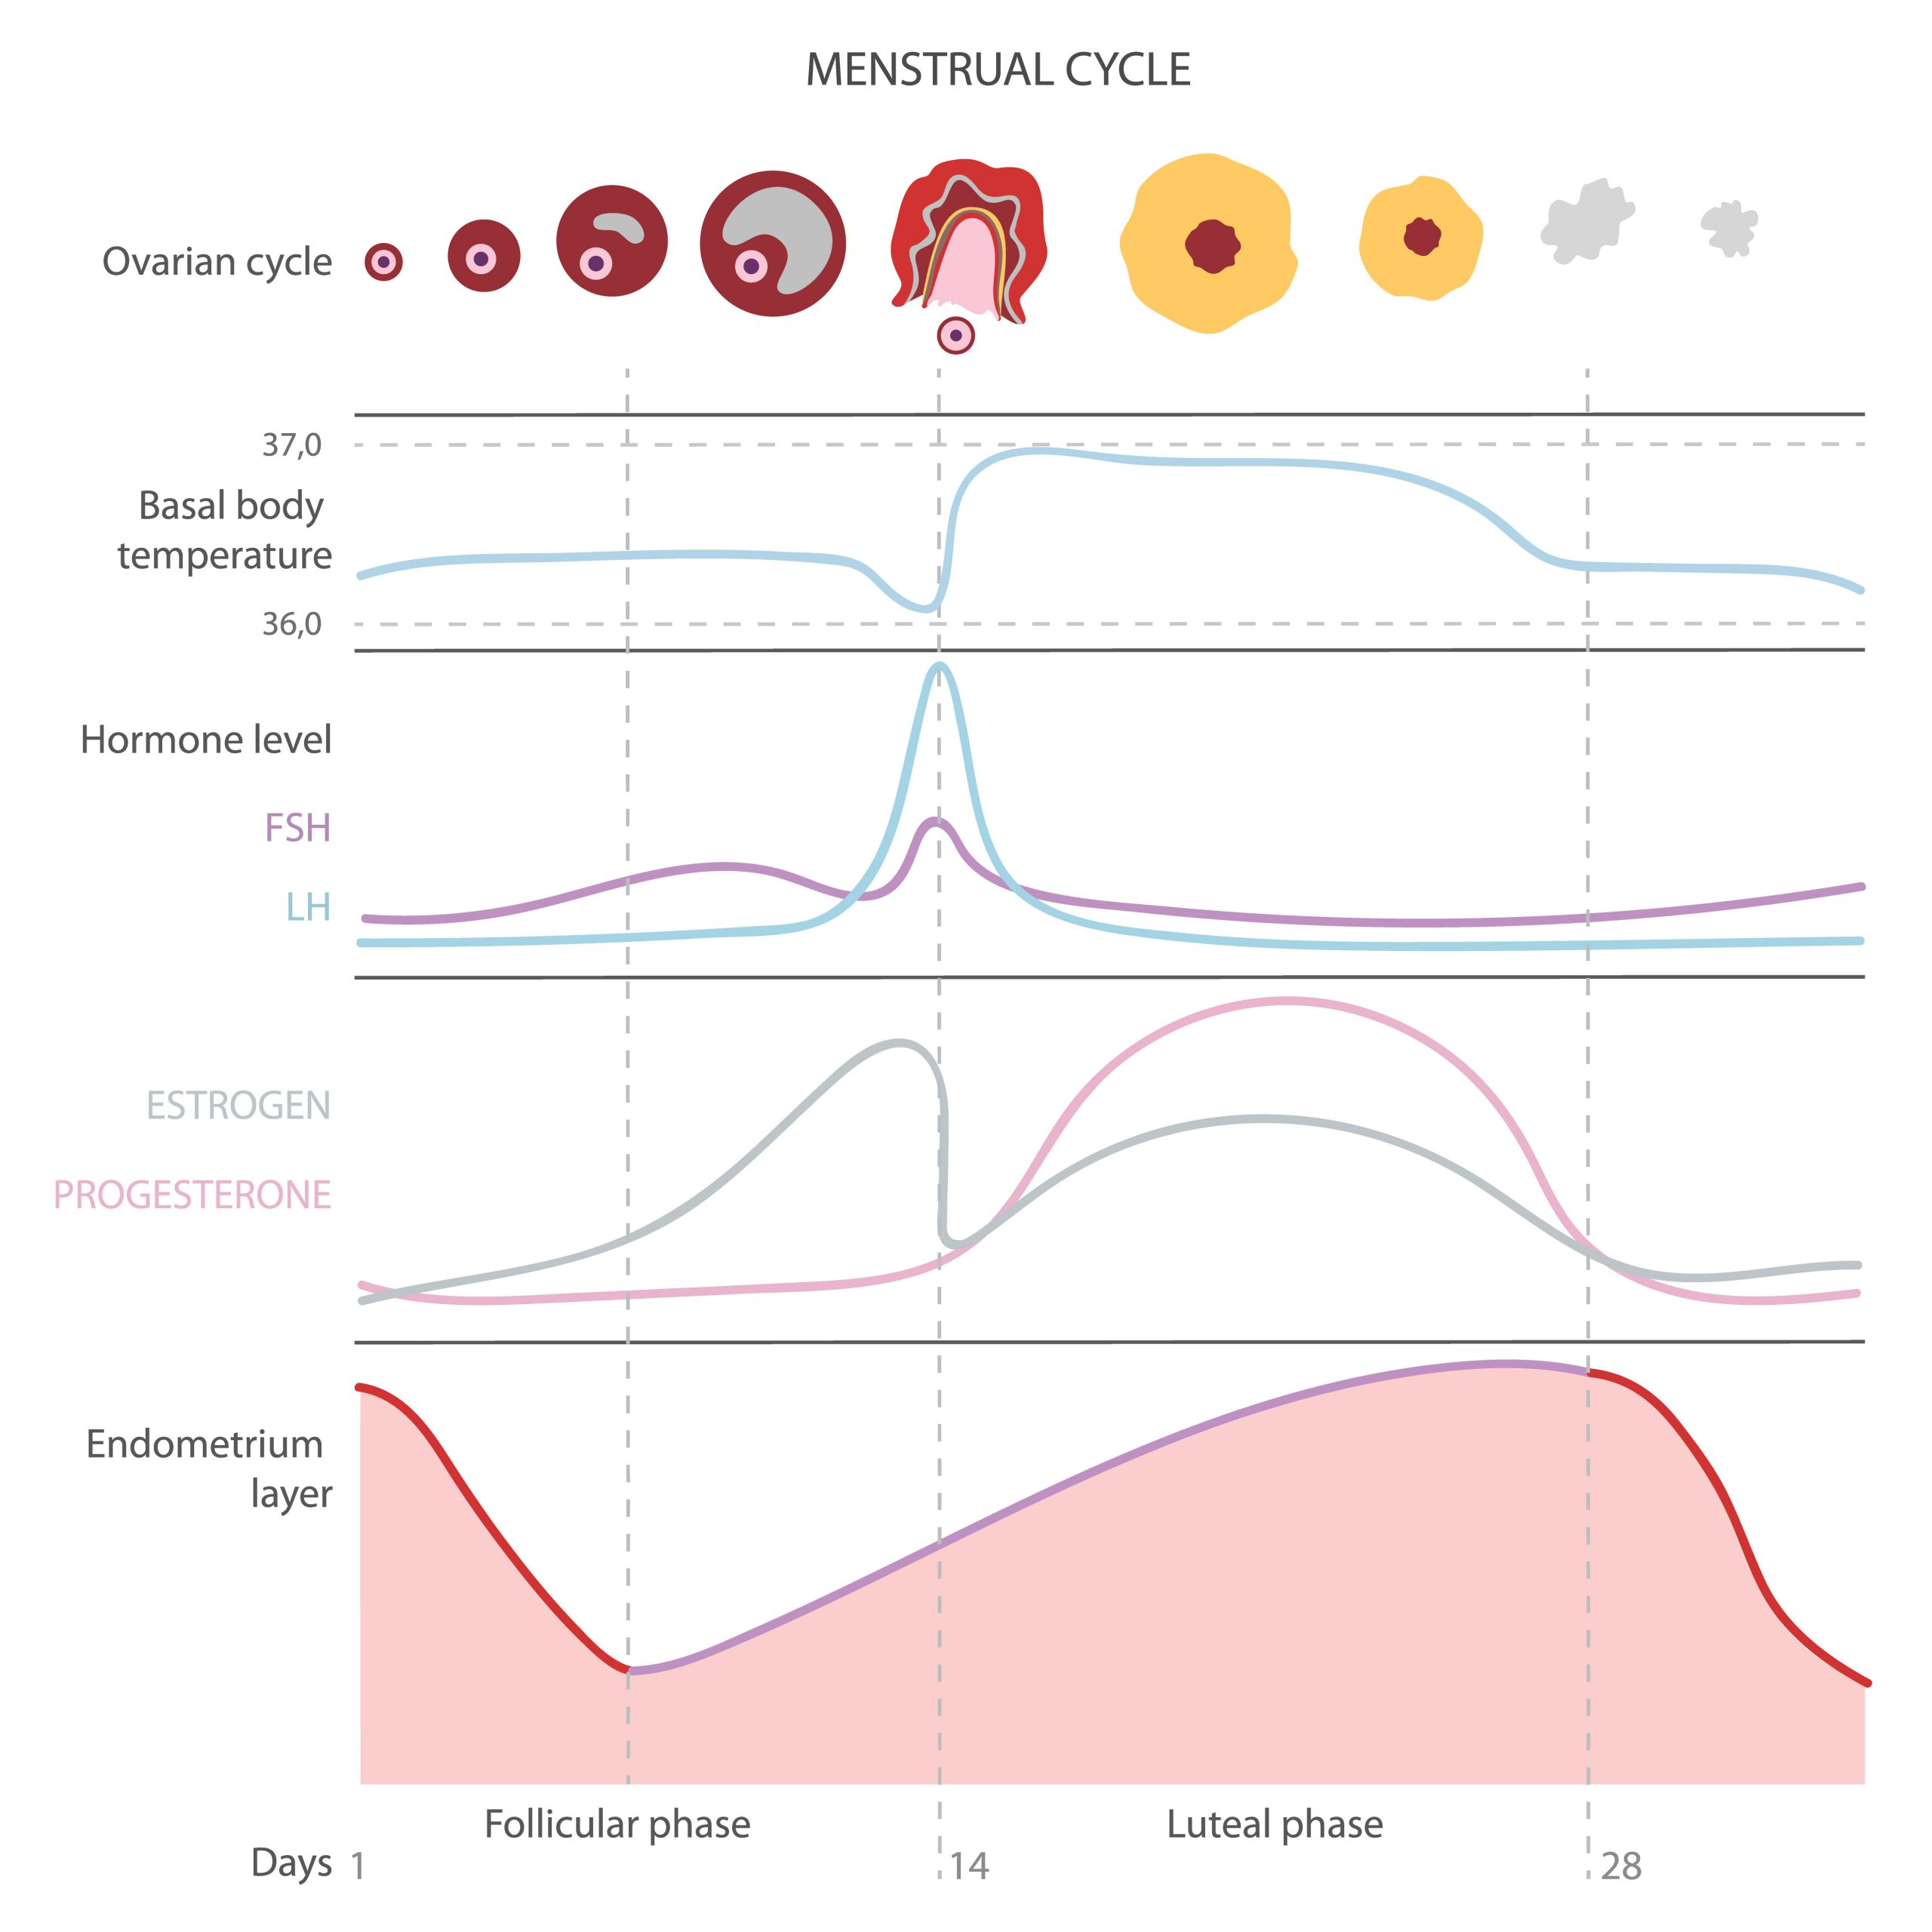 The menstrual cycle, showing changes hormones, endometrial basal body temperature.